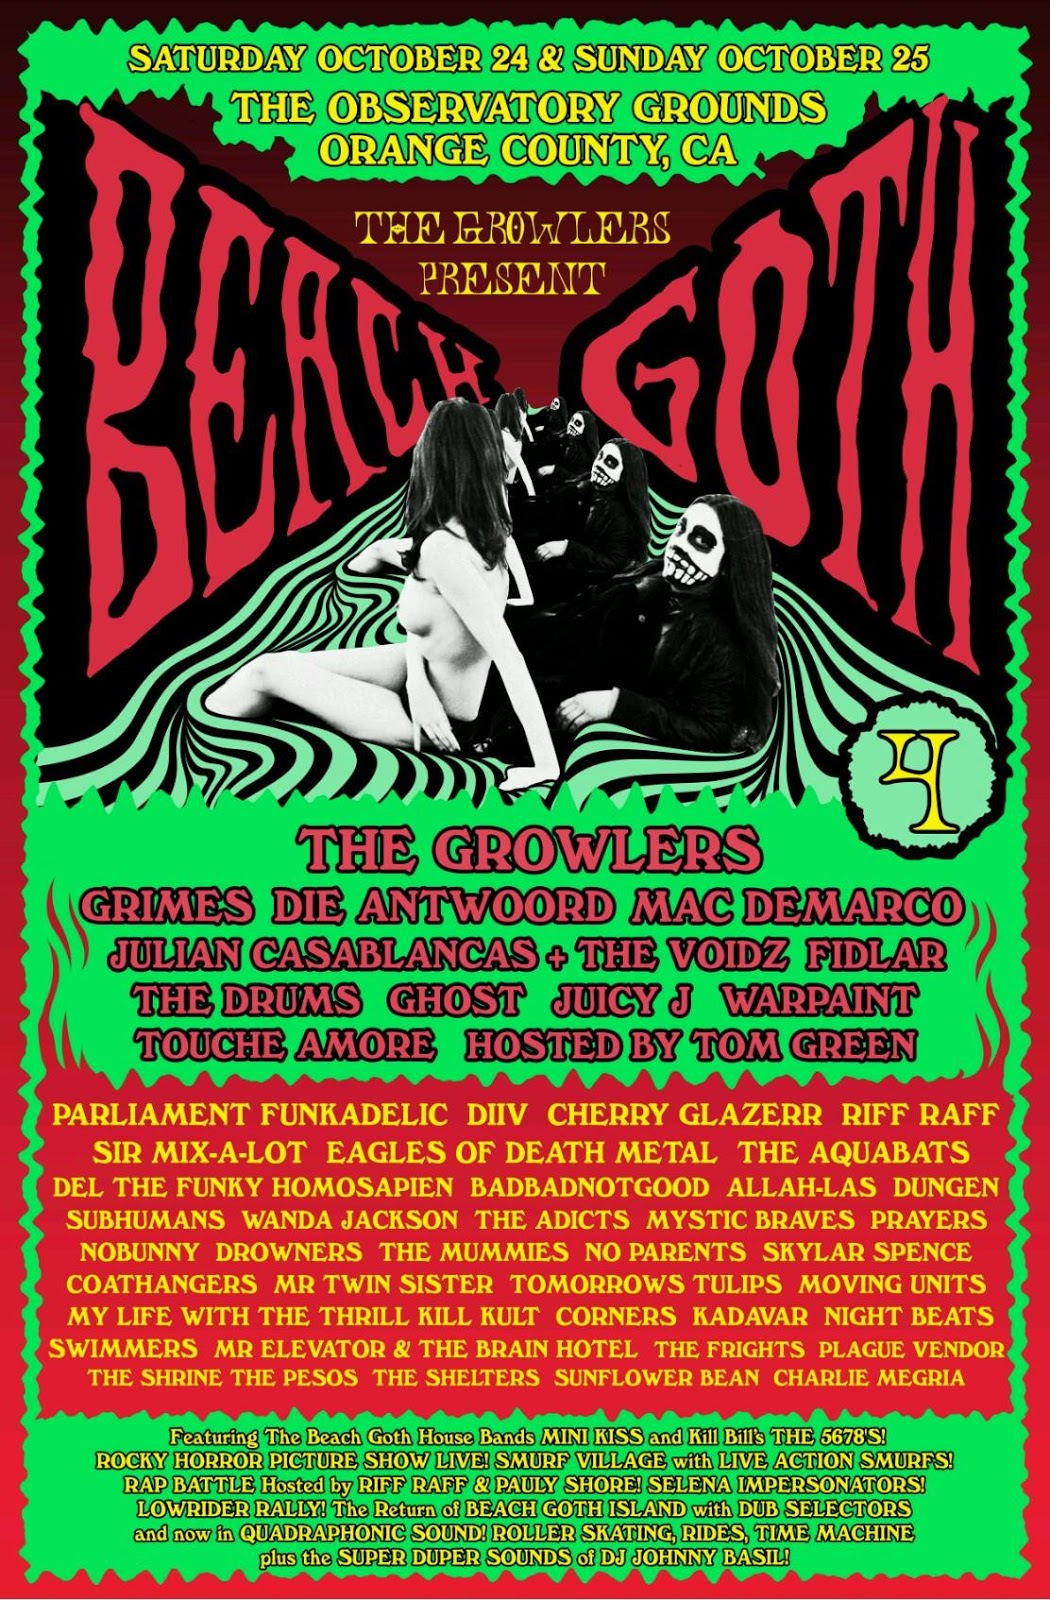 Beach Goth 2015, Beach Goth 4, The Growlers